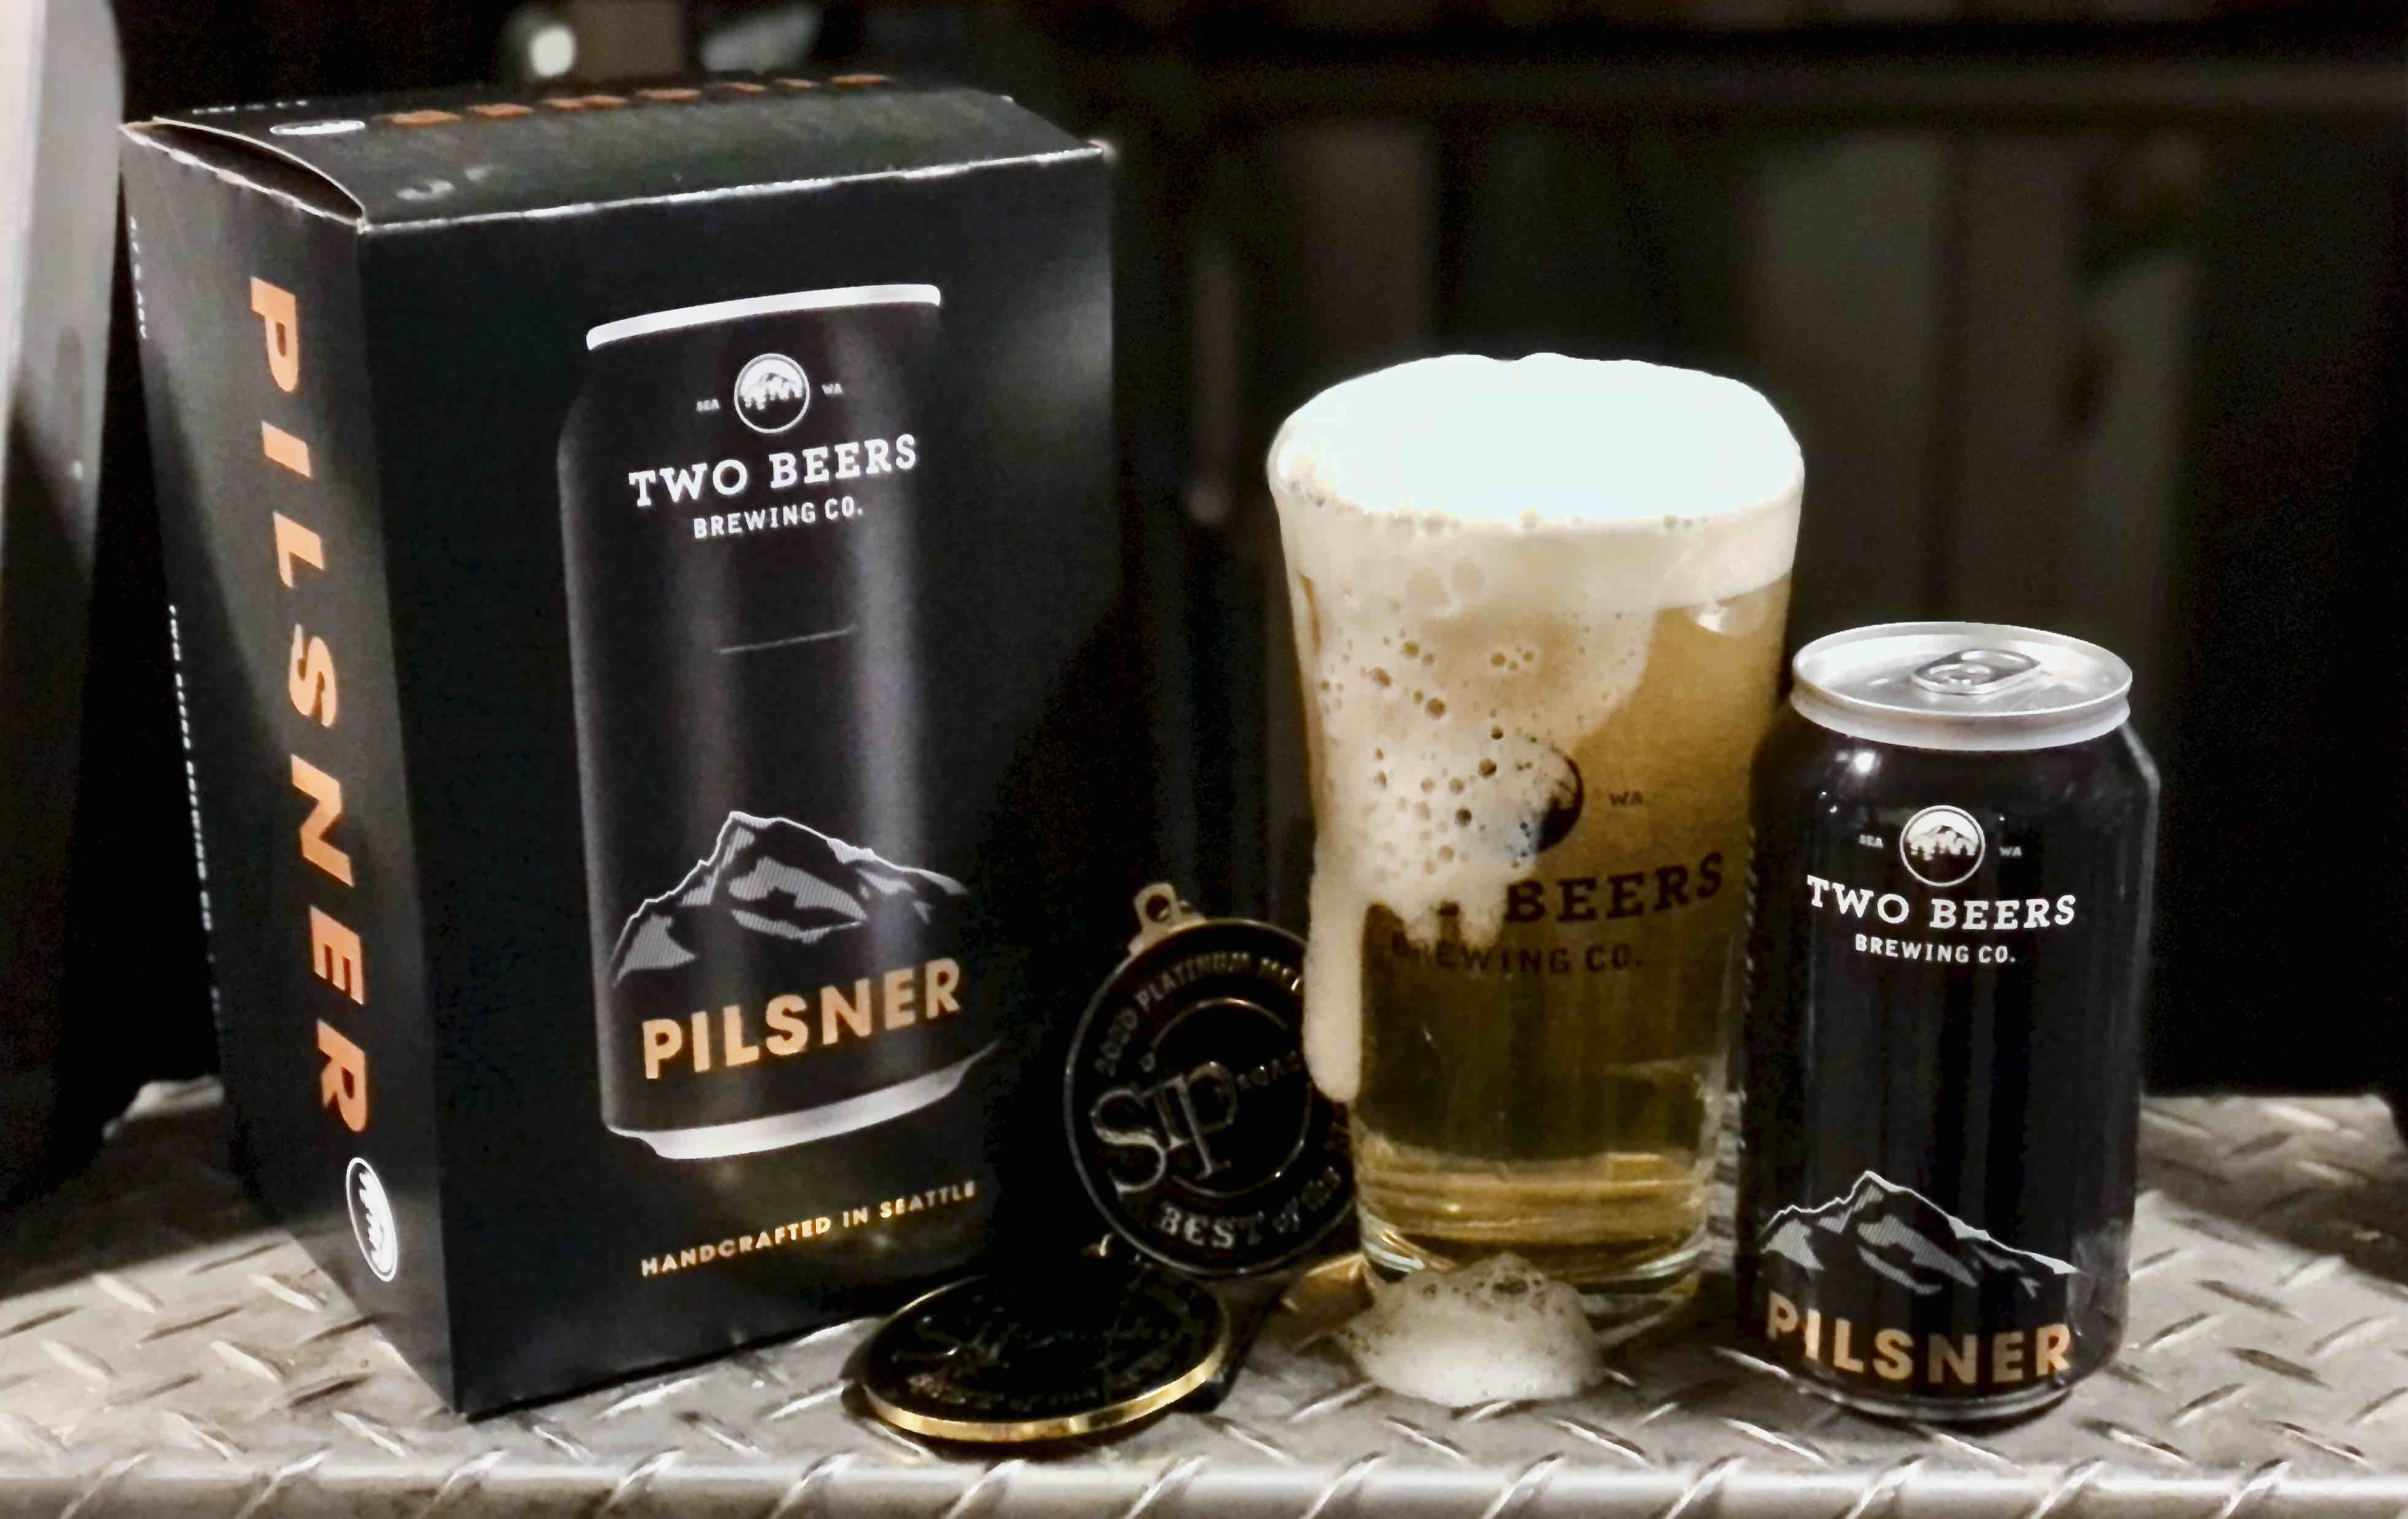 image of Pilsner courtesy of Two Beers Brewing